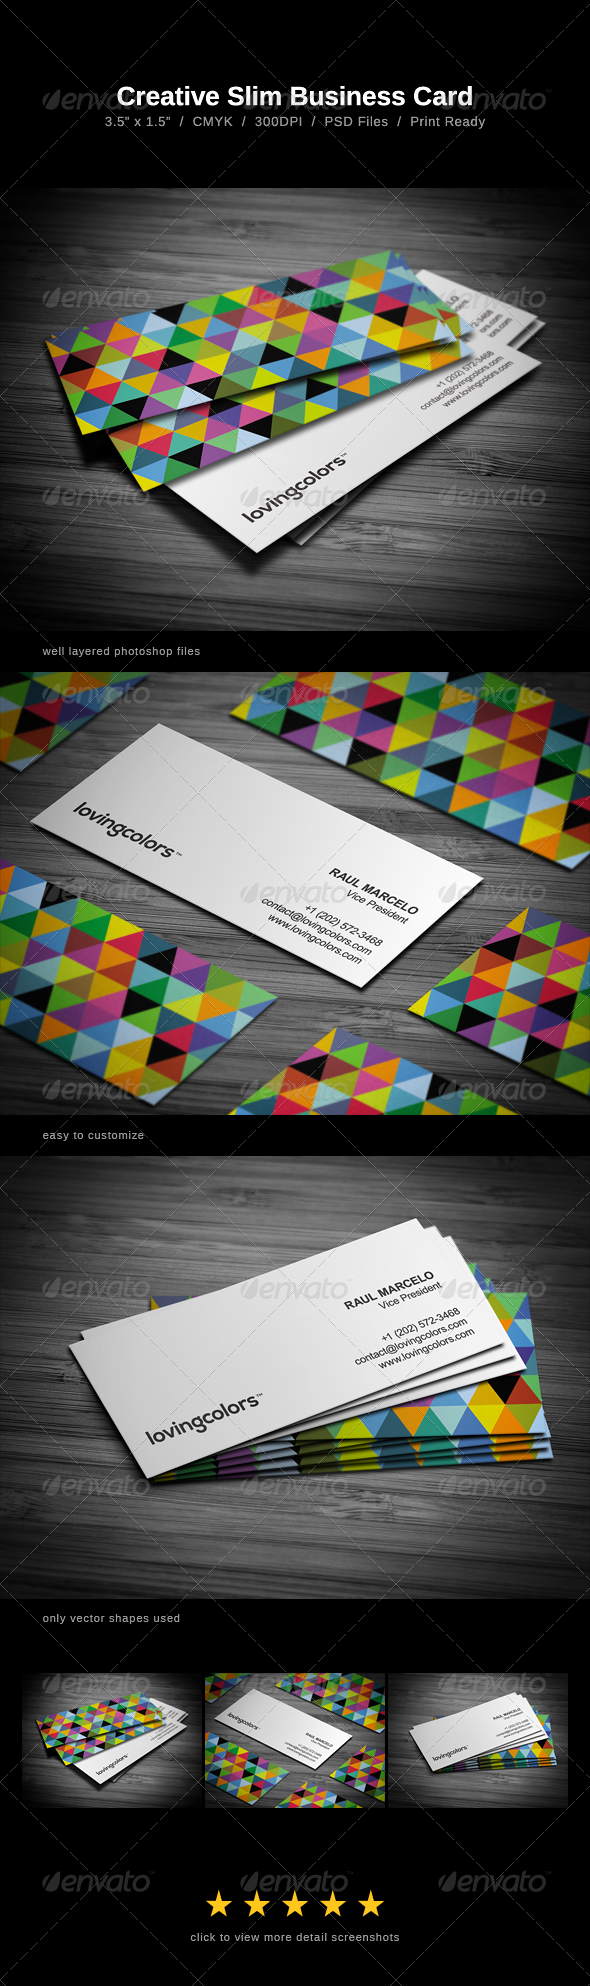 Creative Slim Business Card by FlowPixels | GraphicRiver